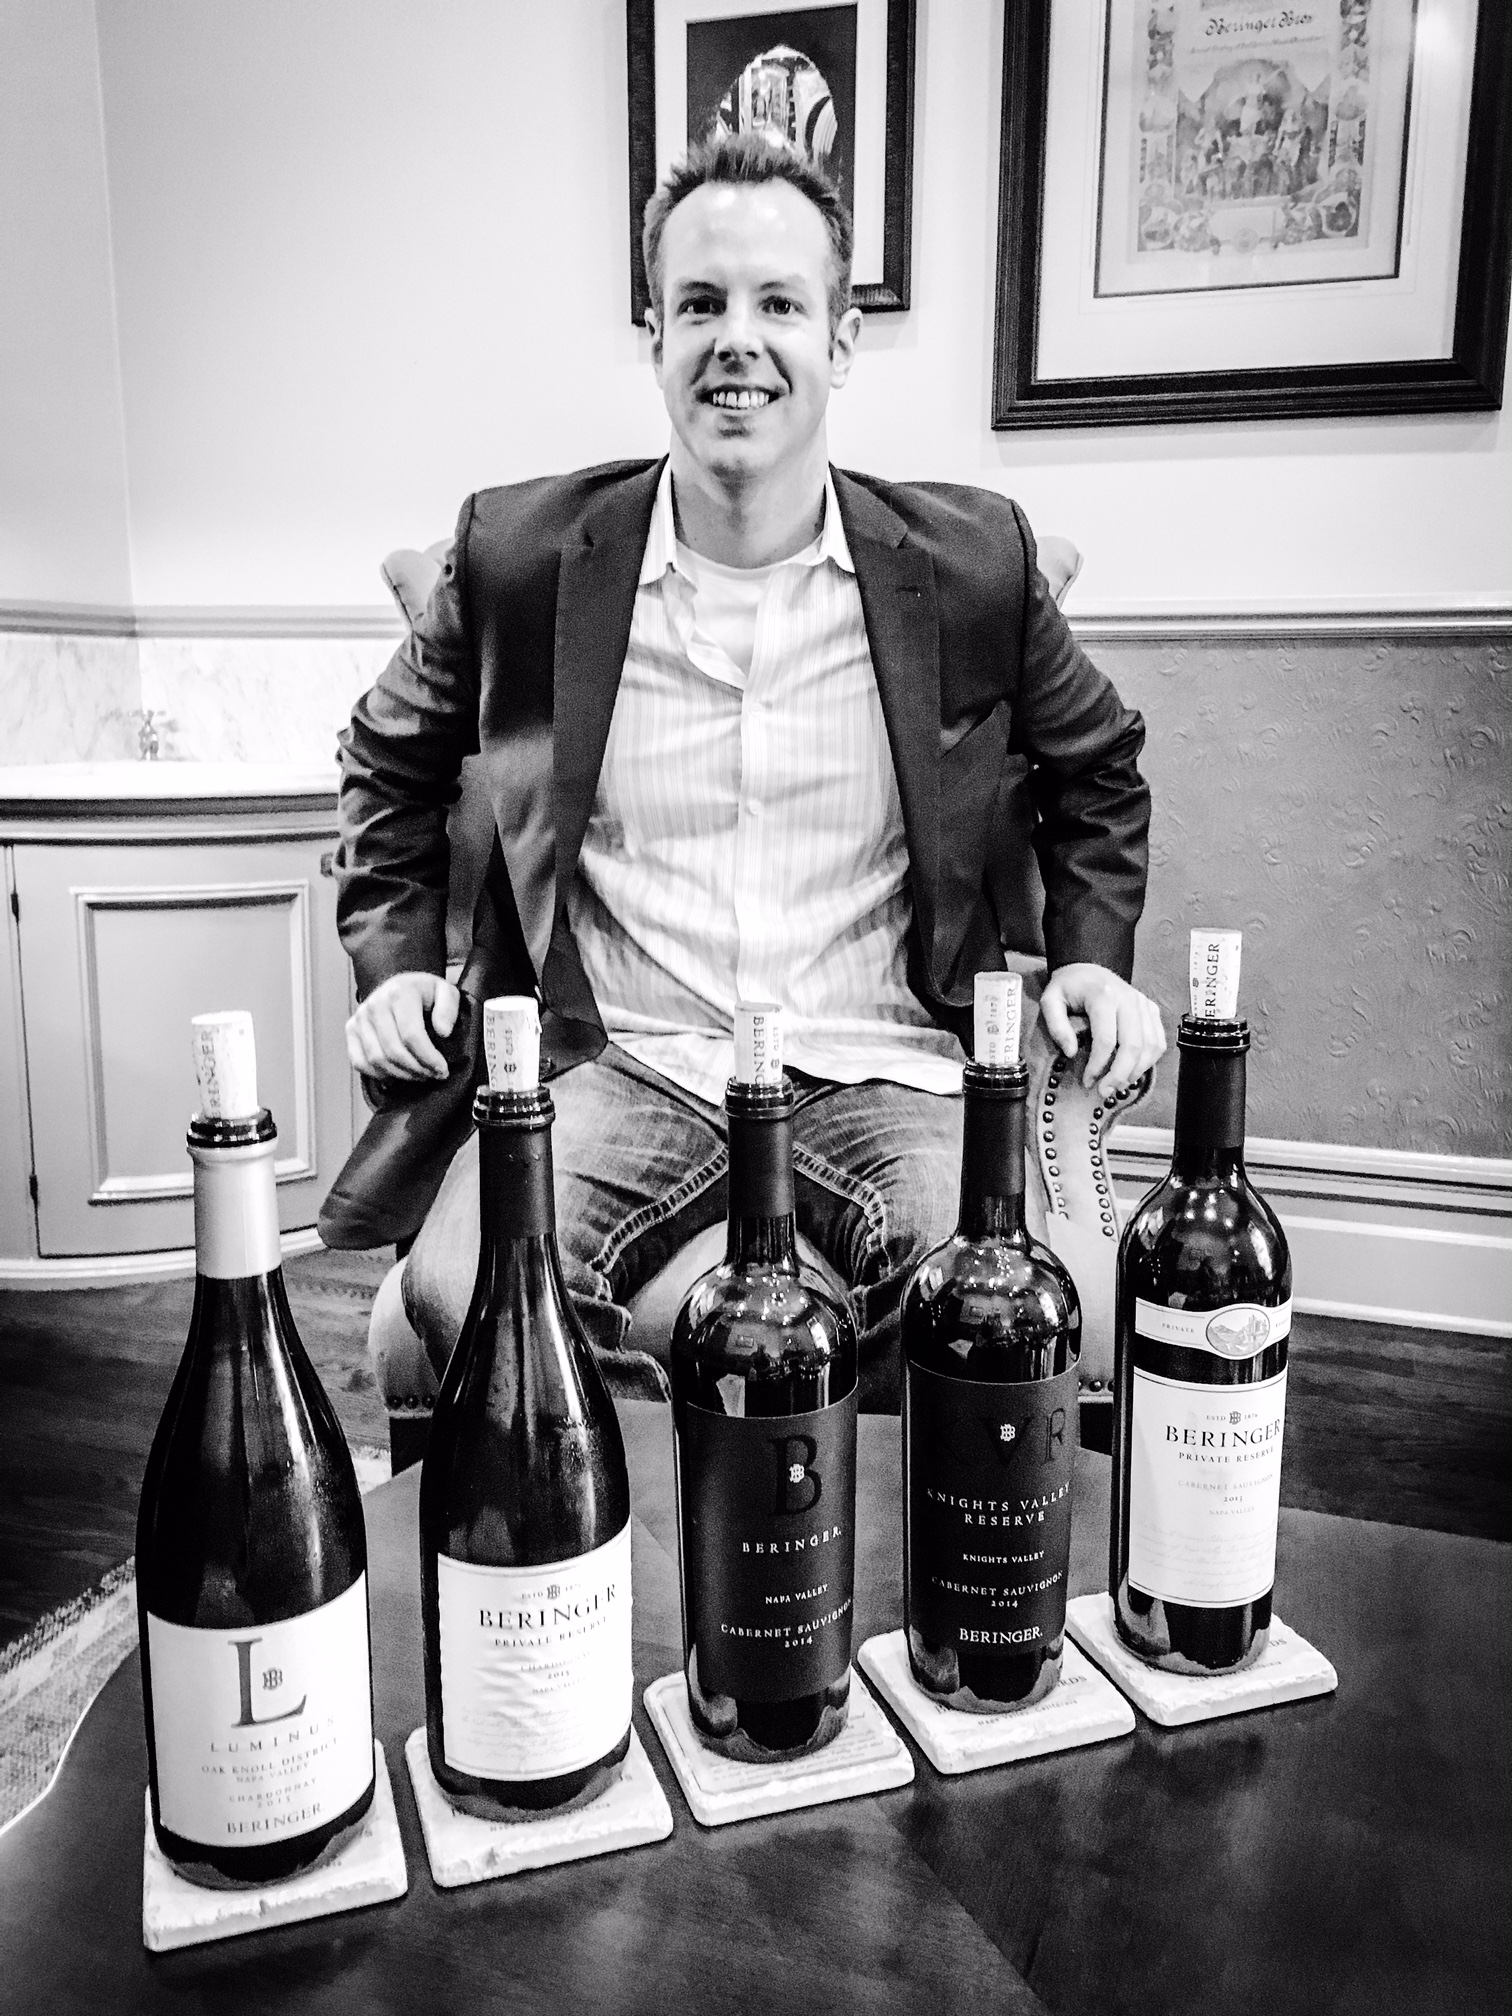 The new lineup of Beringer wines was absolutely stunning.